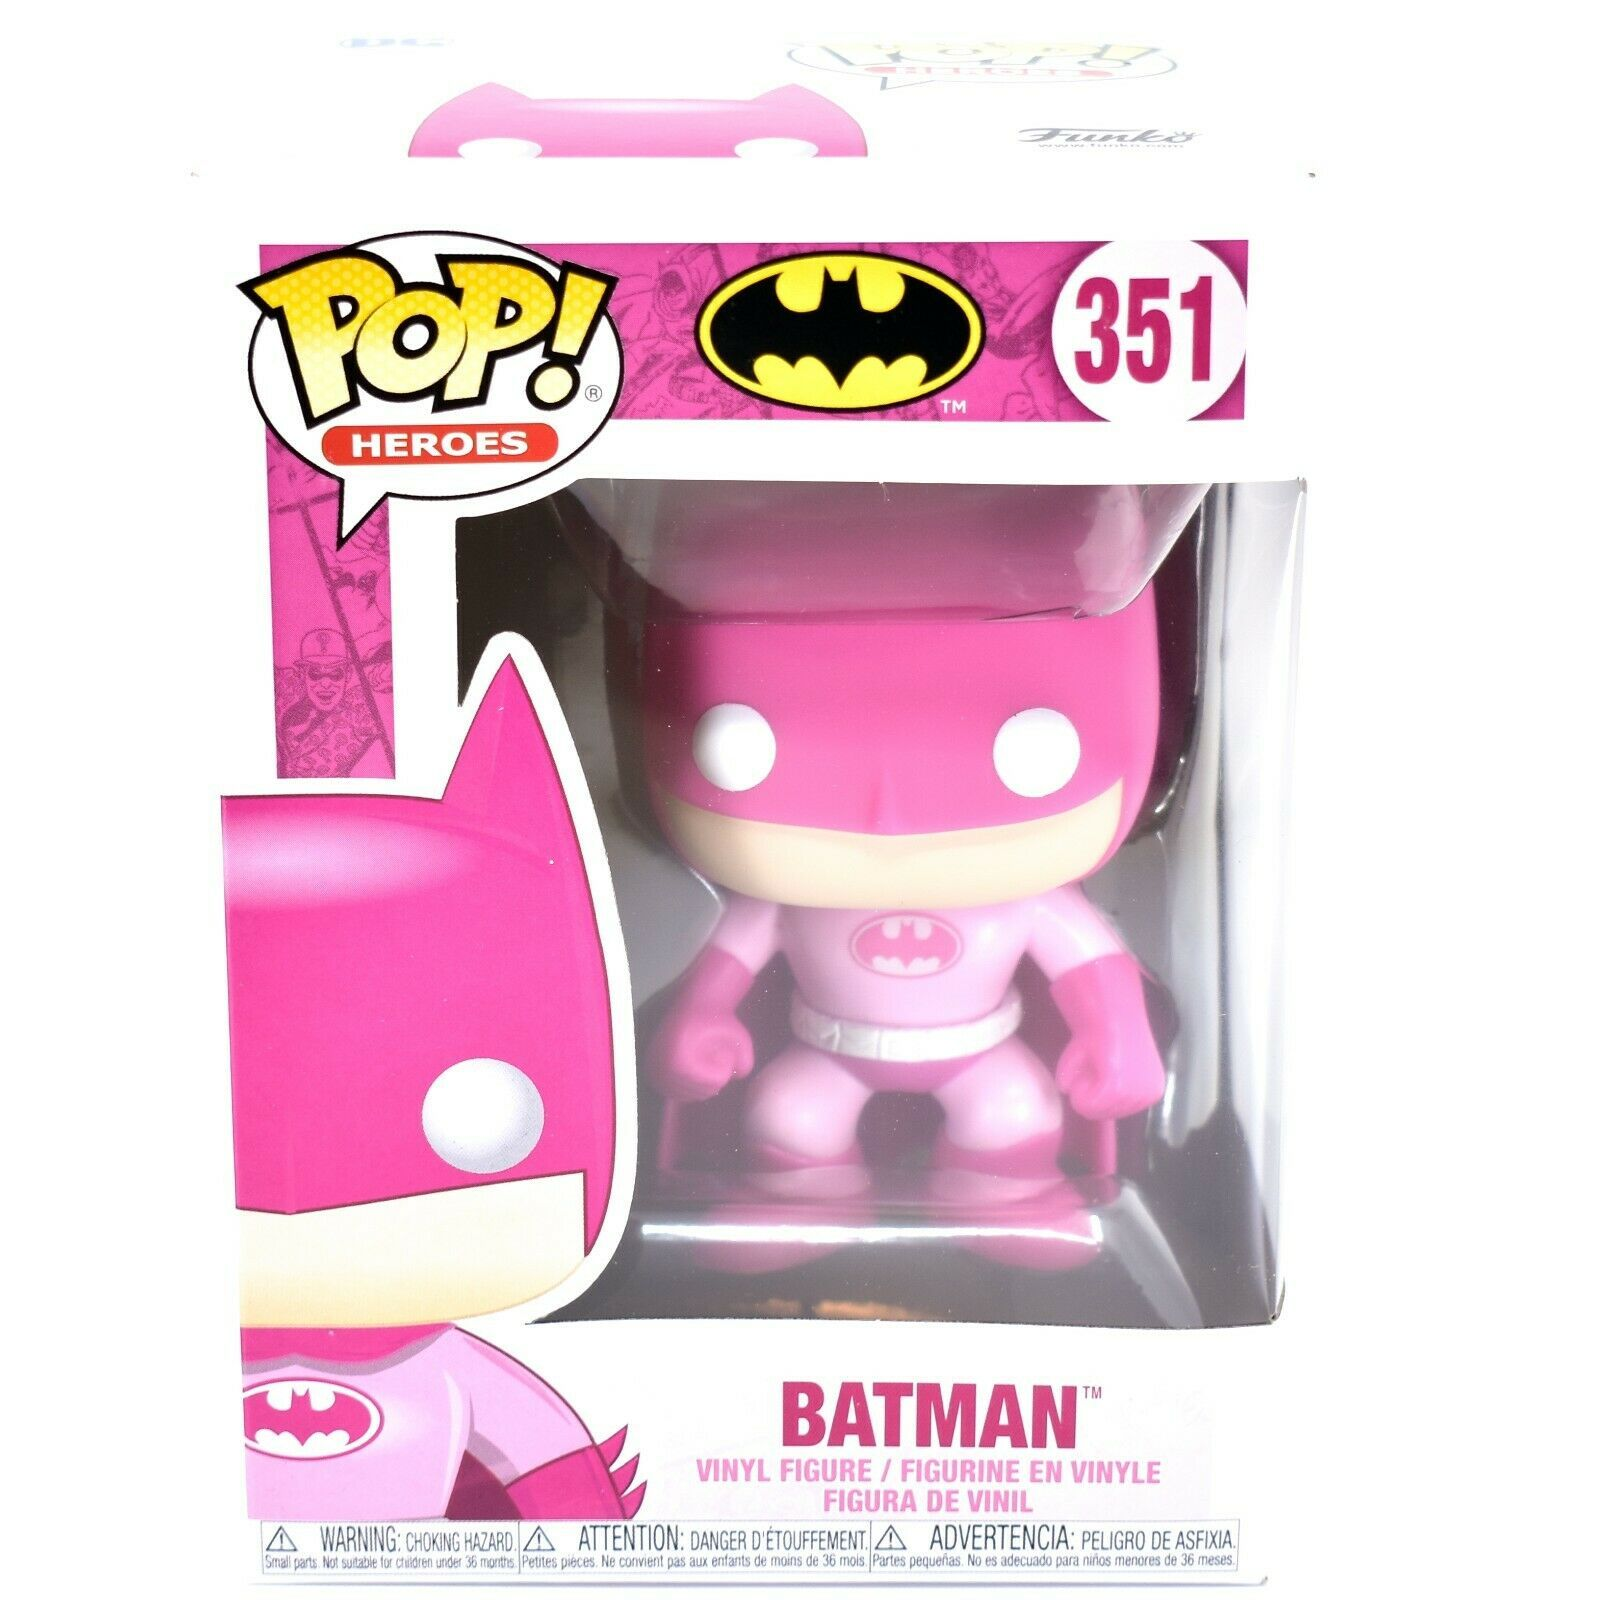 Funko Pop! Heroes Batman #351 BCRF Pink Breast Cancer Awareness Figure